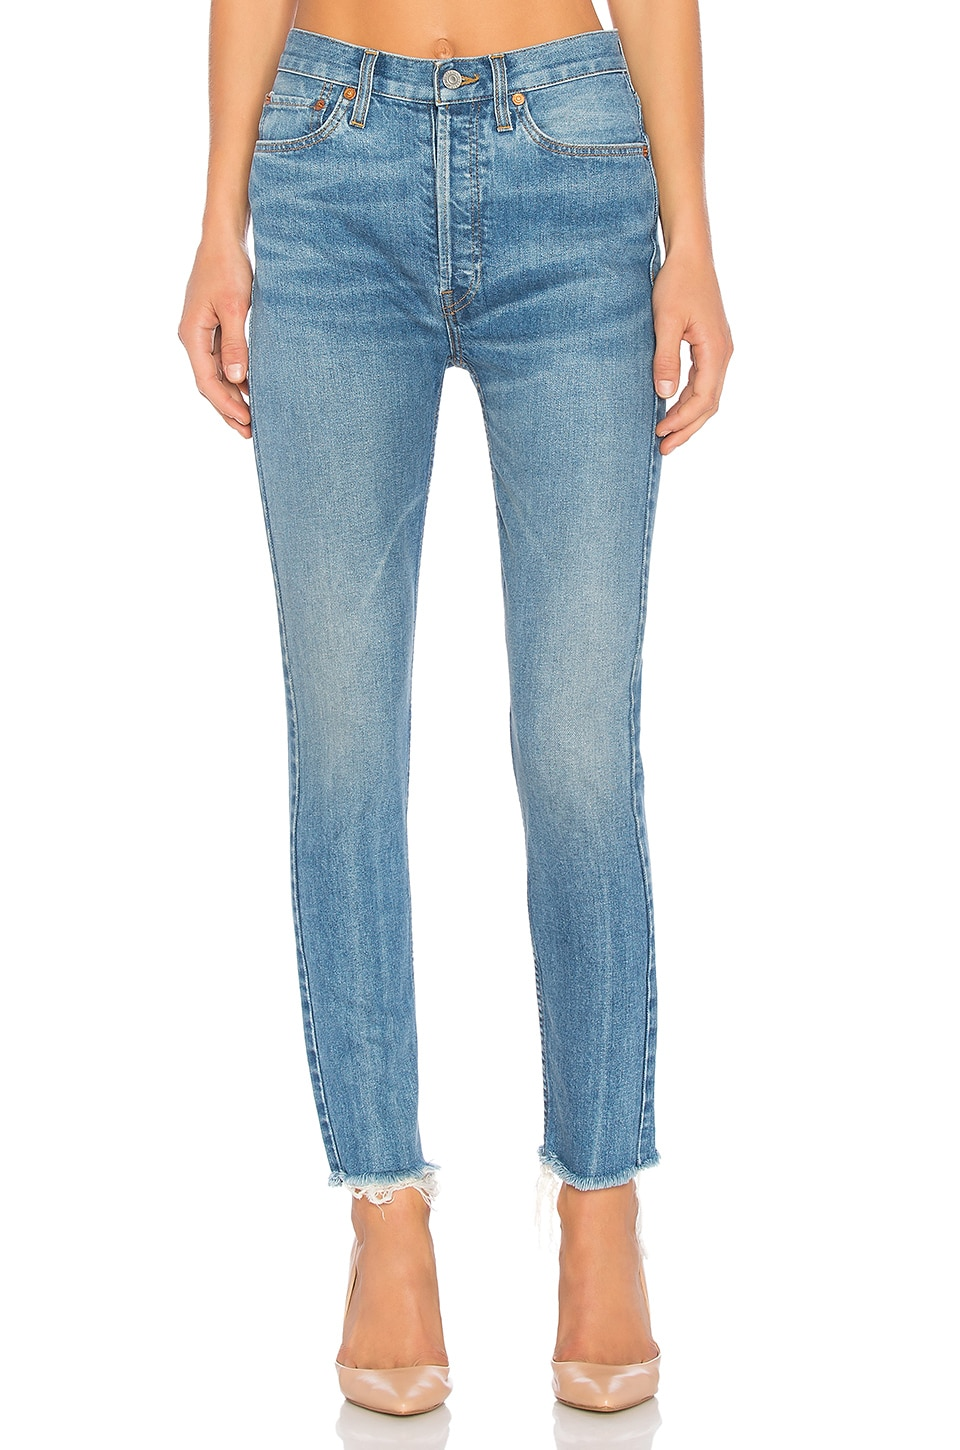 RE/DONE Originals High Rise Ankle Crop in Medium Vain